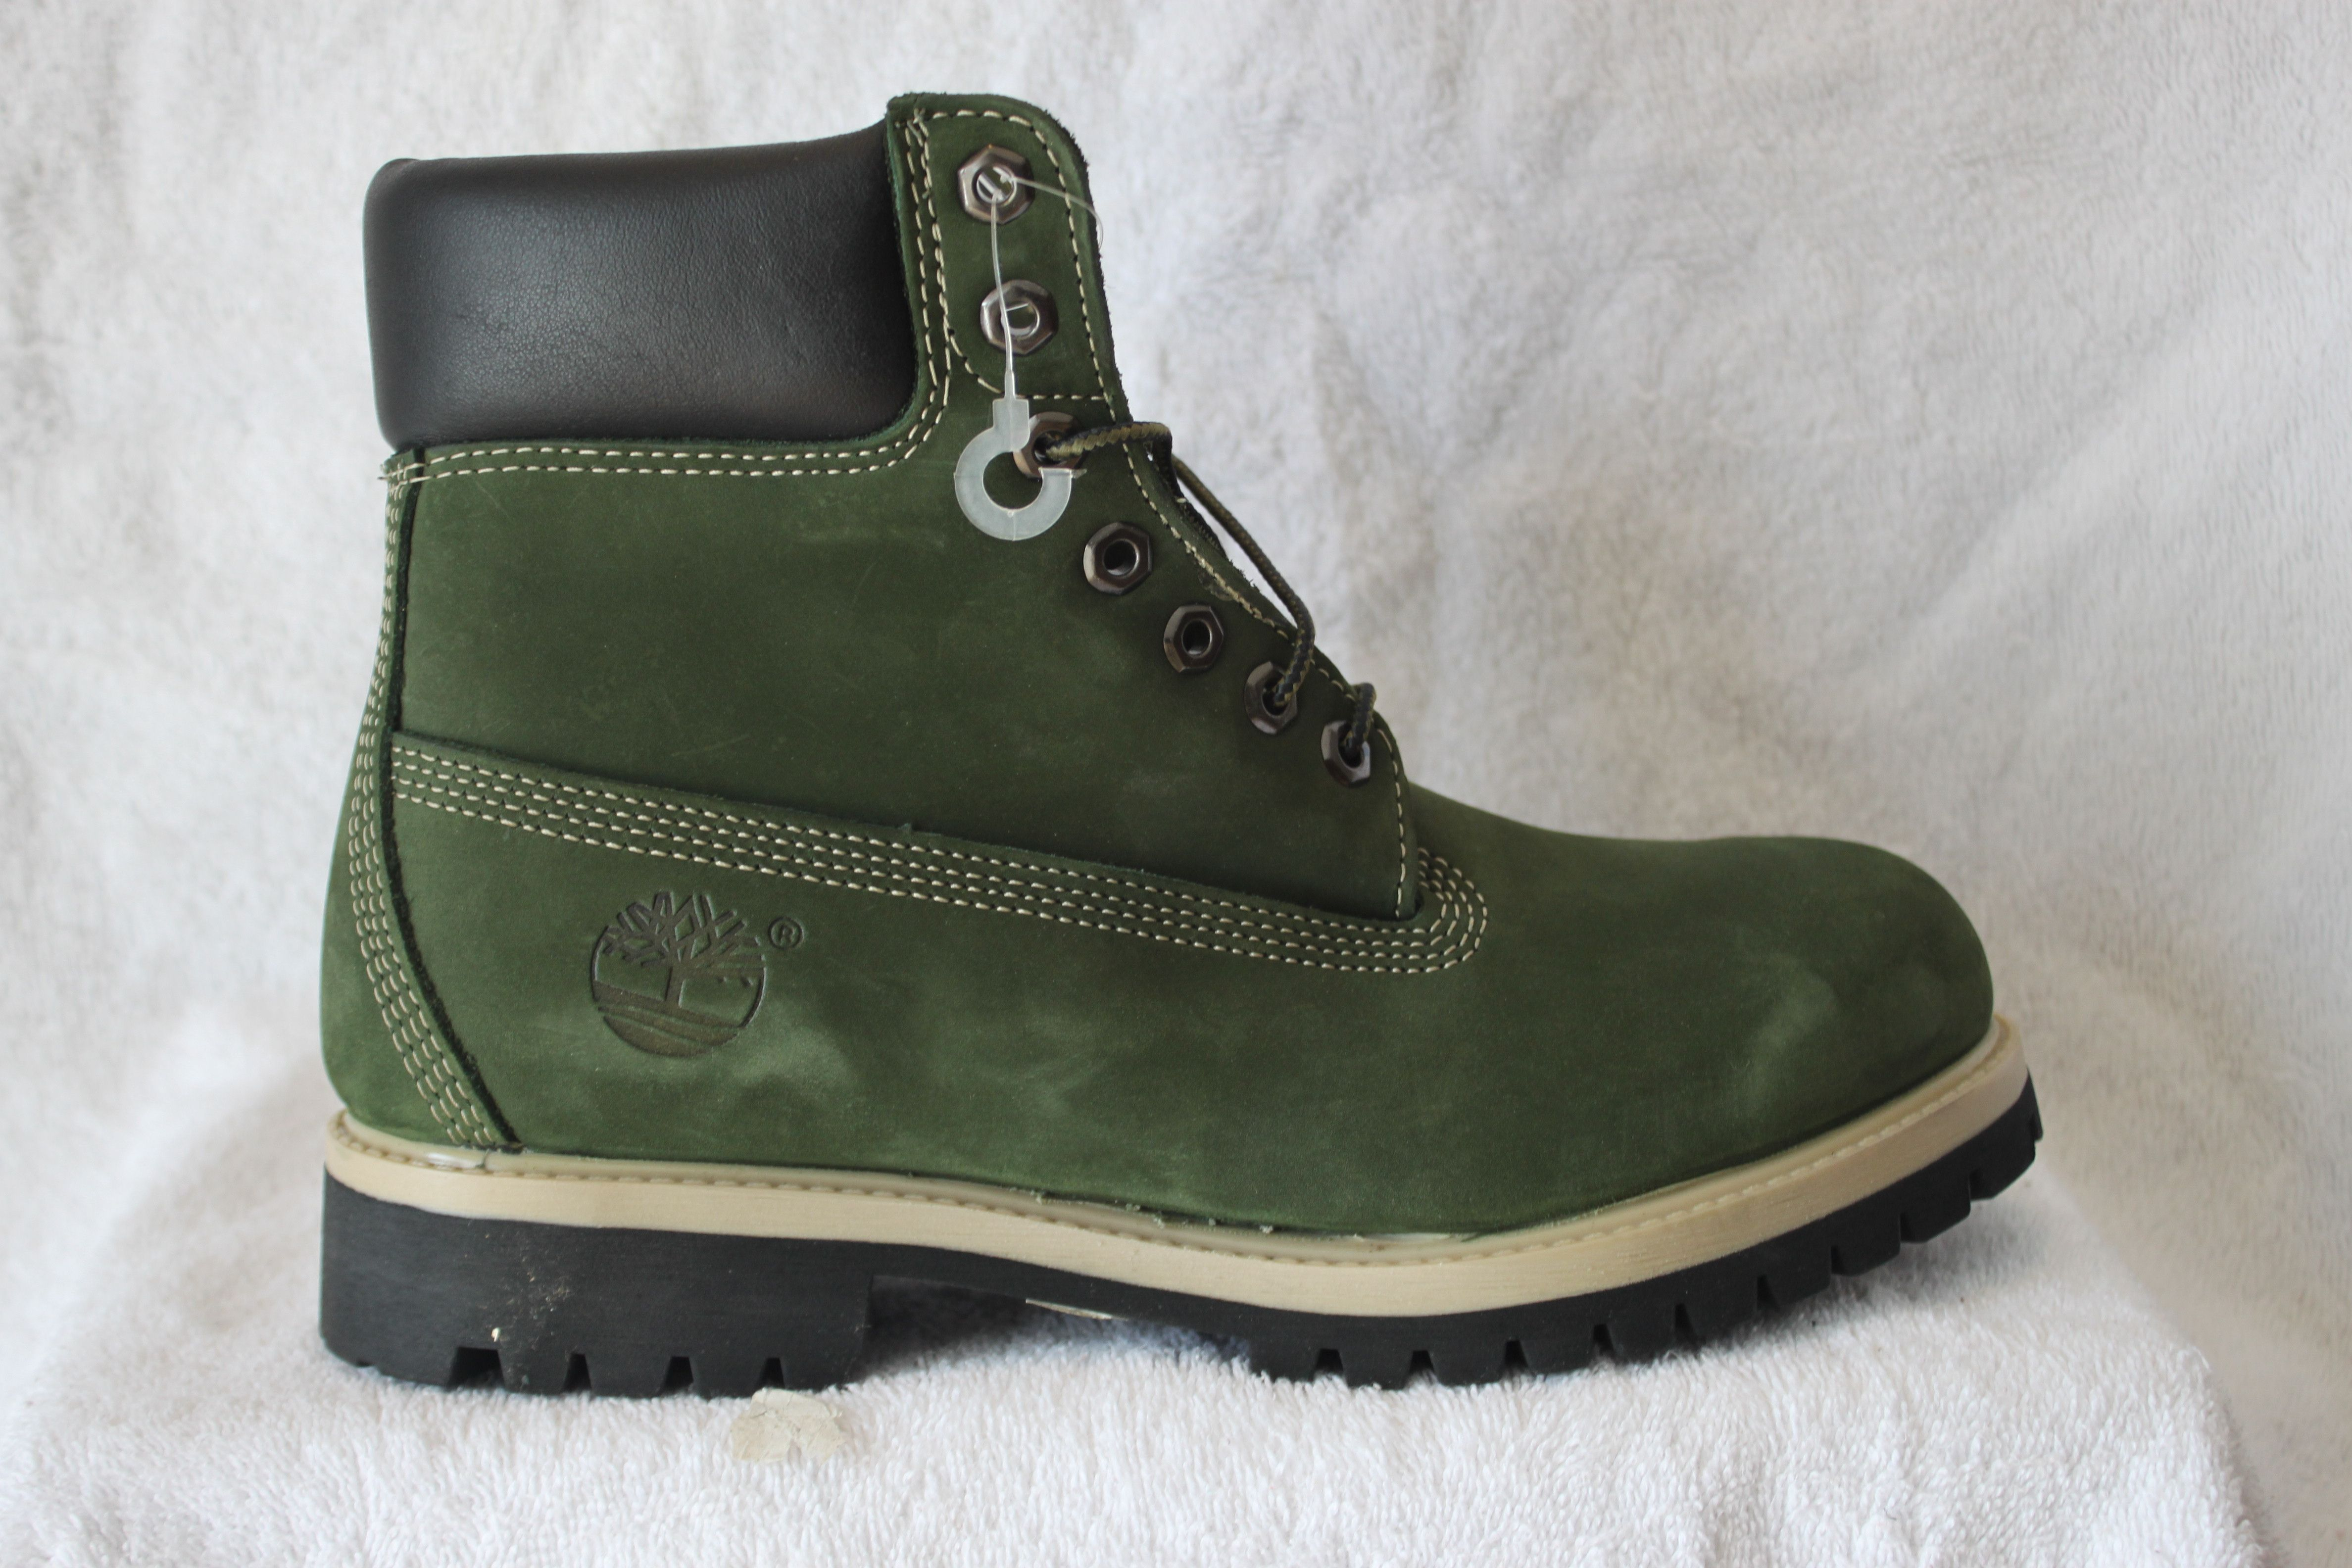 Forest green timberland boots